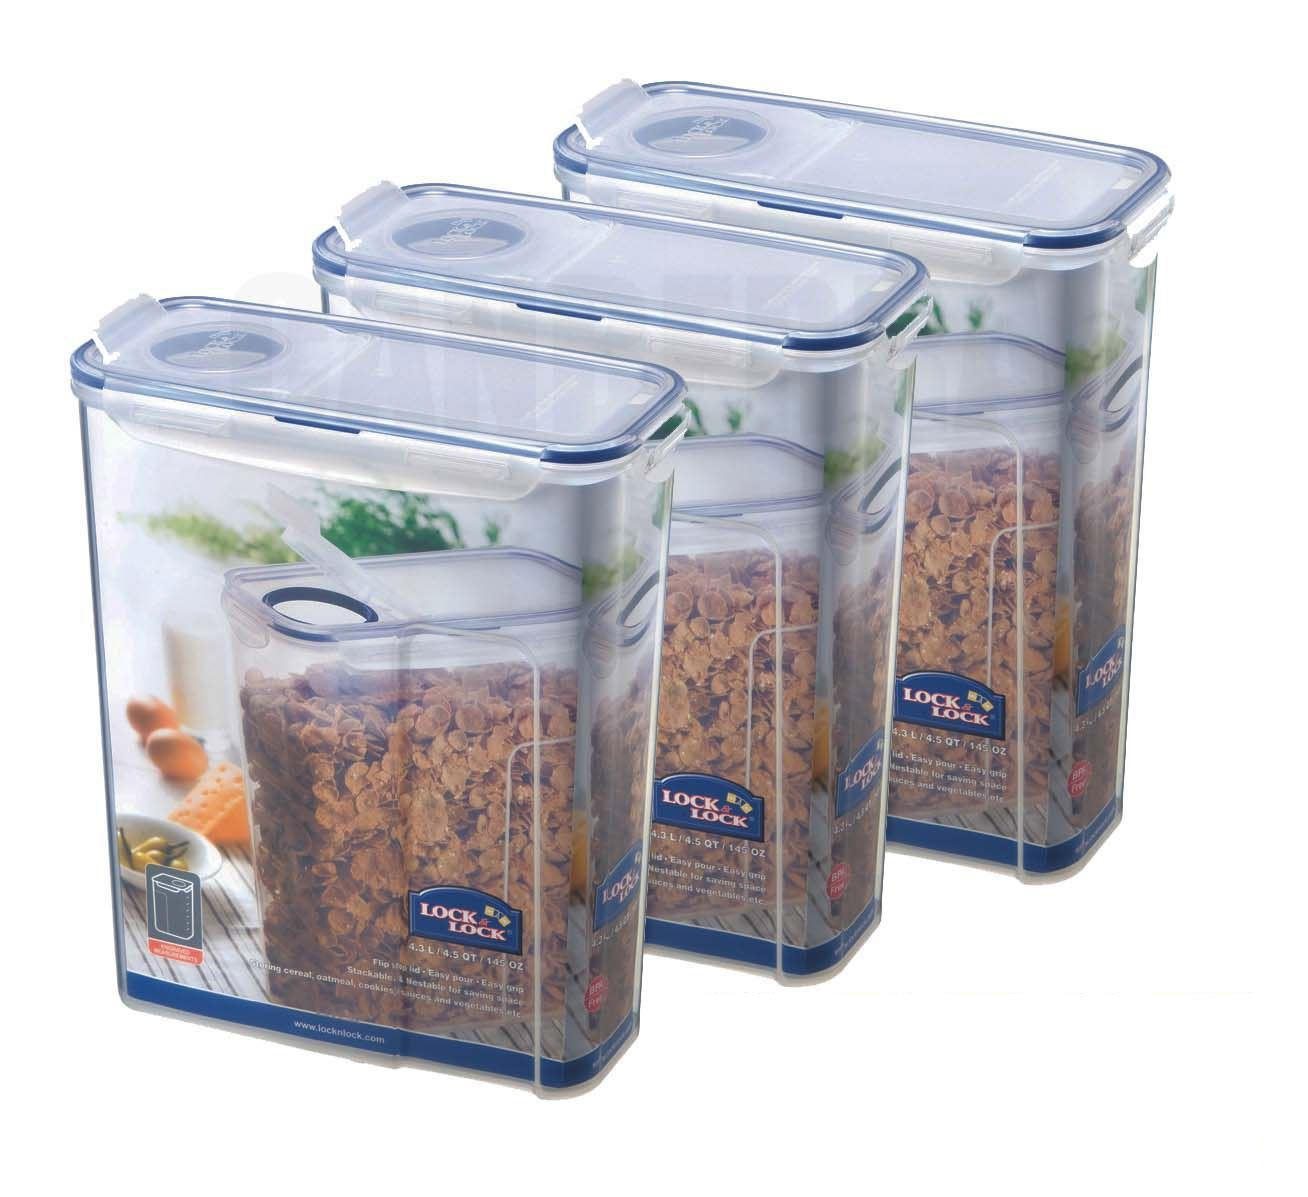 Store Categories  sc 1 st  eBay & 3 x LOCK u0026 LOCK CEREAL u0026 PASTA FOOD STORAGE CONTAINER 4.3L ... Aboutintivar.Com